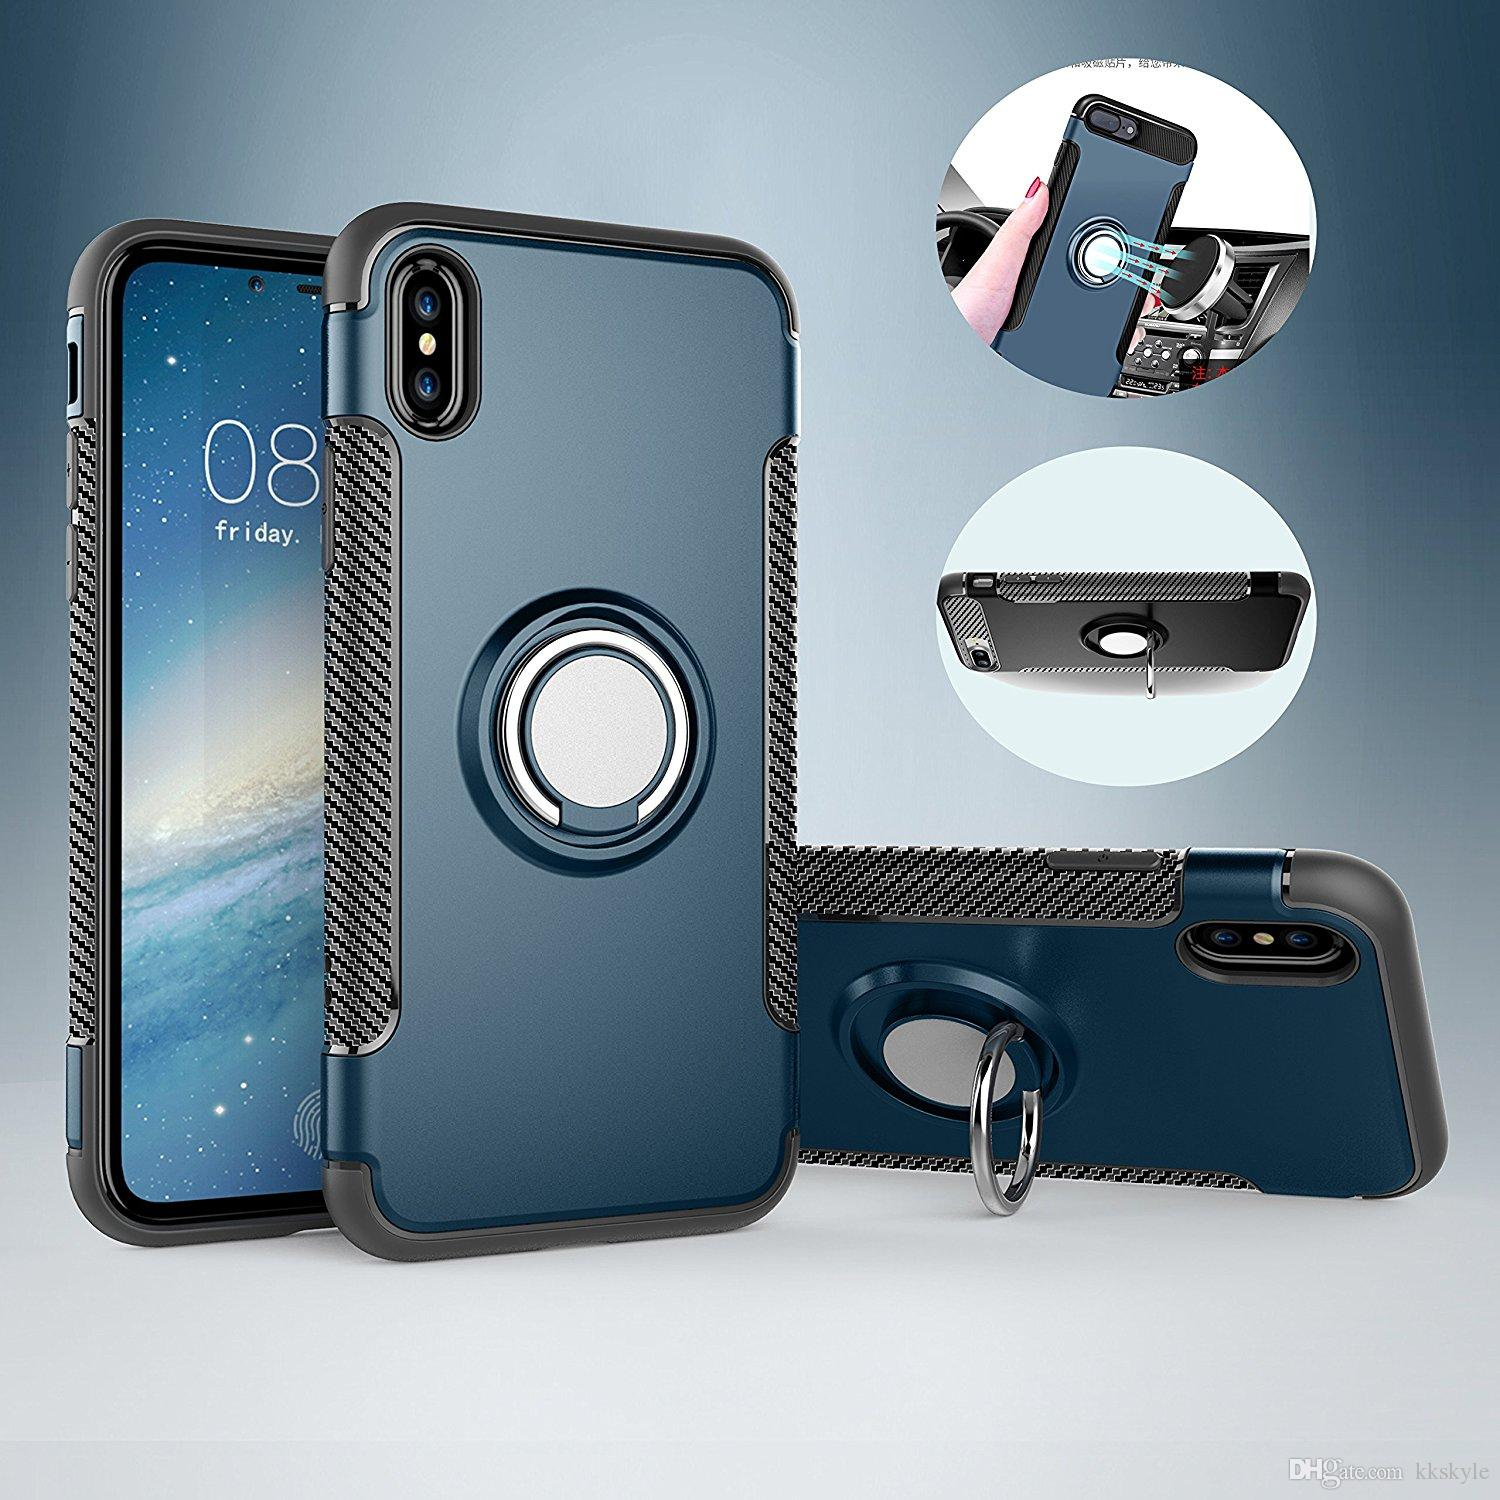 lowest price 8fb6e f8374 For iPhone X Case Cover Dual Layer Hard Silicone Rubber Hybrid with  Kickstand 360° Rotating Ring Grip Case Shockproof Impact Protection